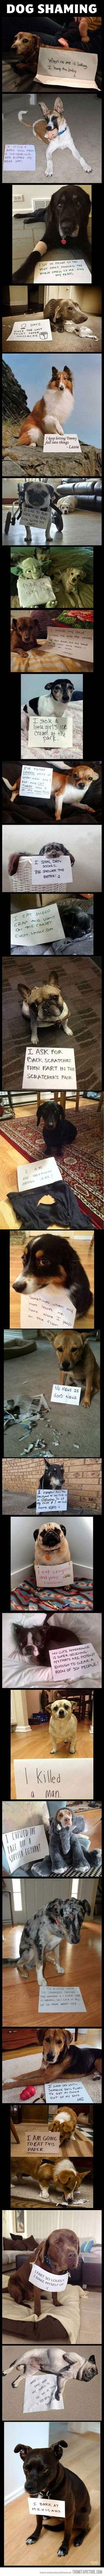 The ultimate dog shaming compilation…